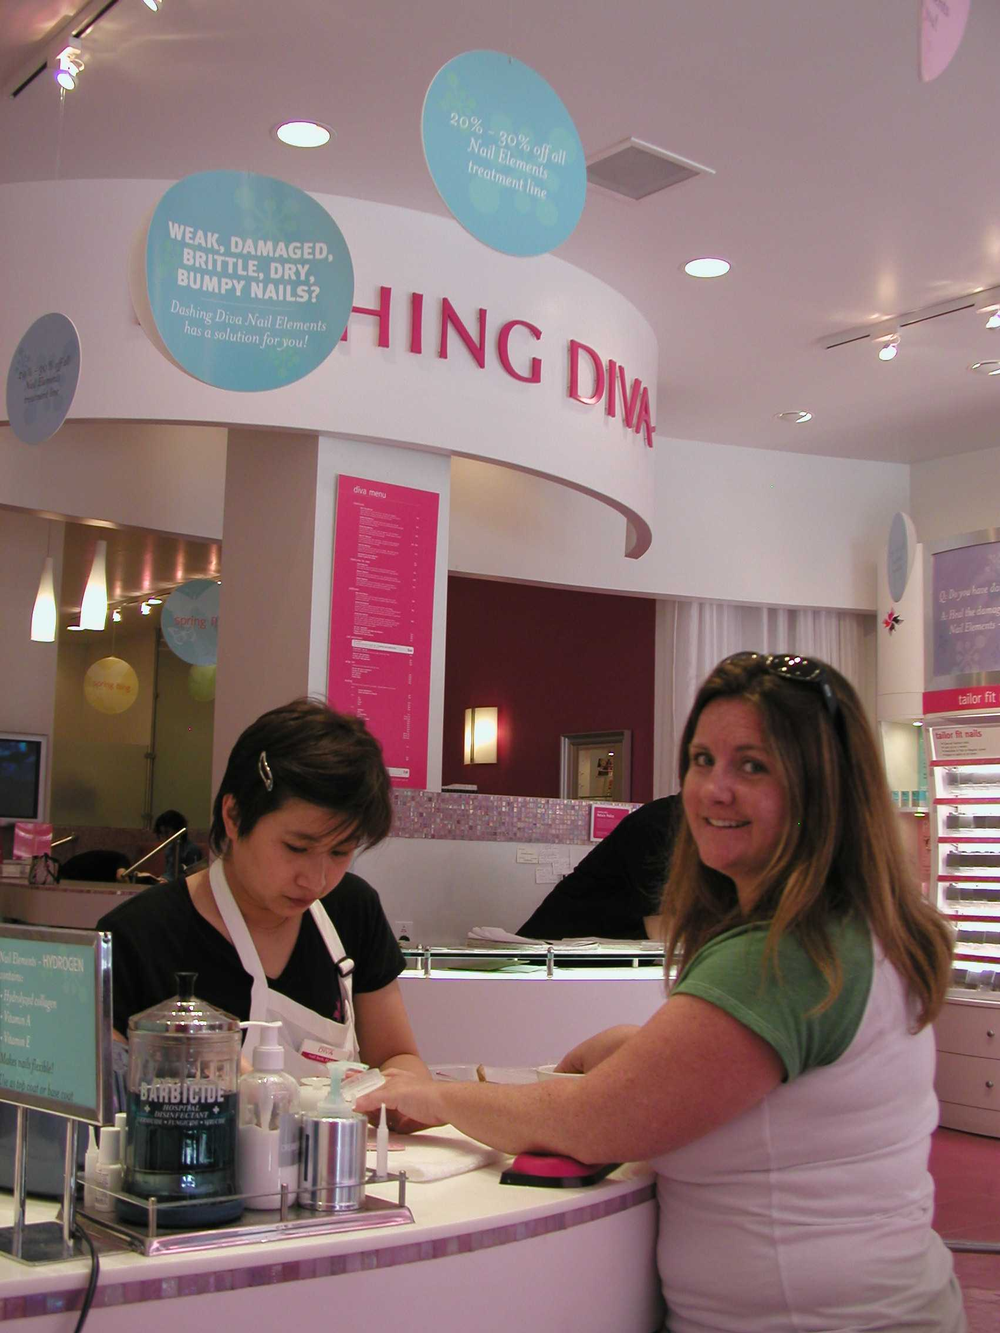 <p>At the Dashing Diva location in New York City.</p>